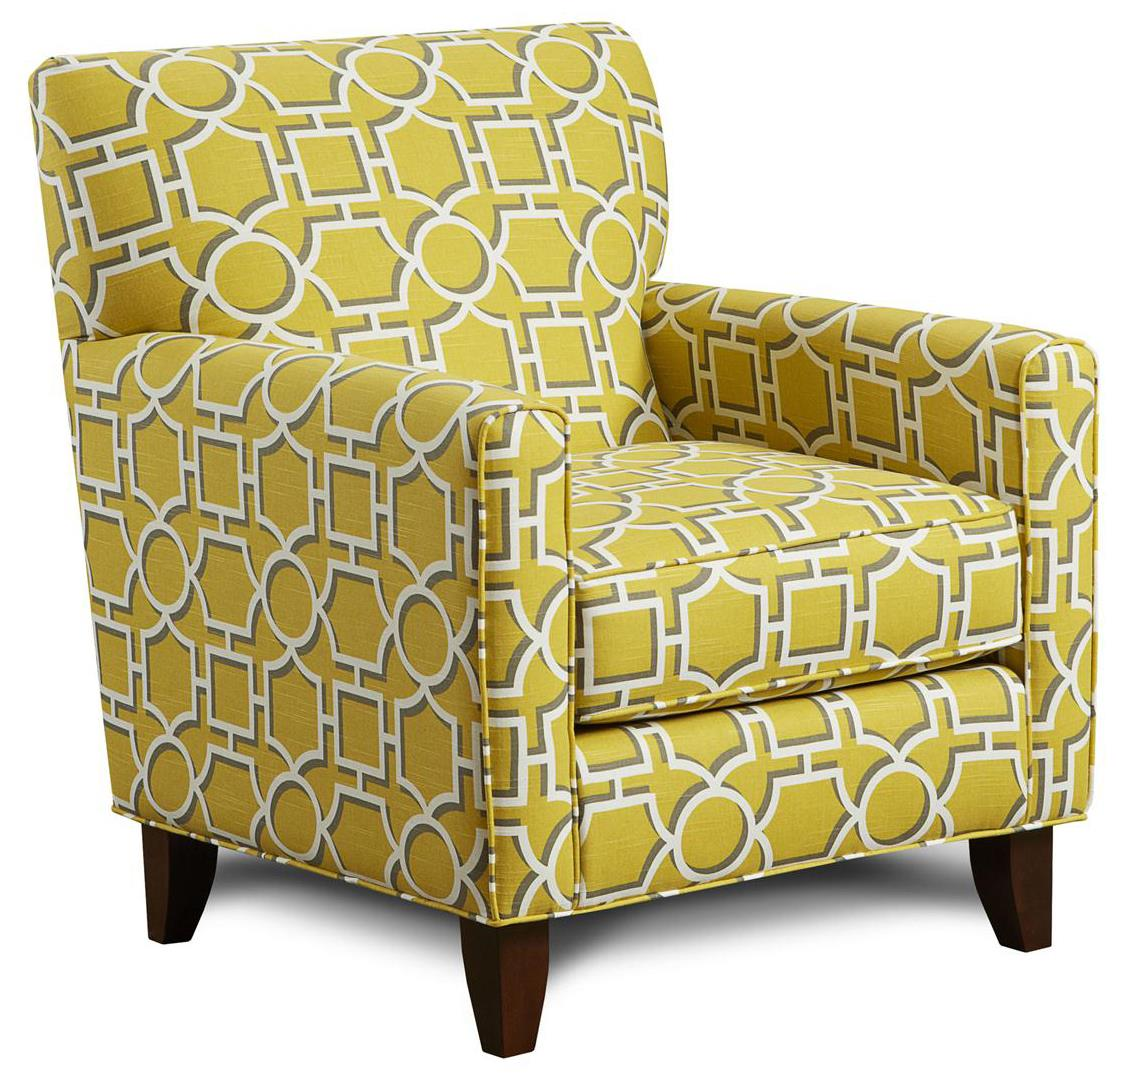 Fusion Furniture 702 Accent Chair - Item Number: 702Vreeland Dandelion